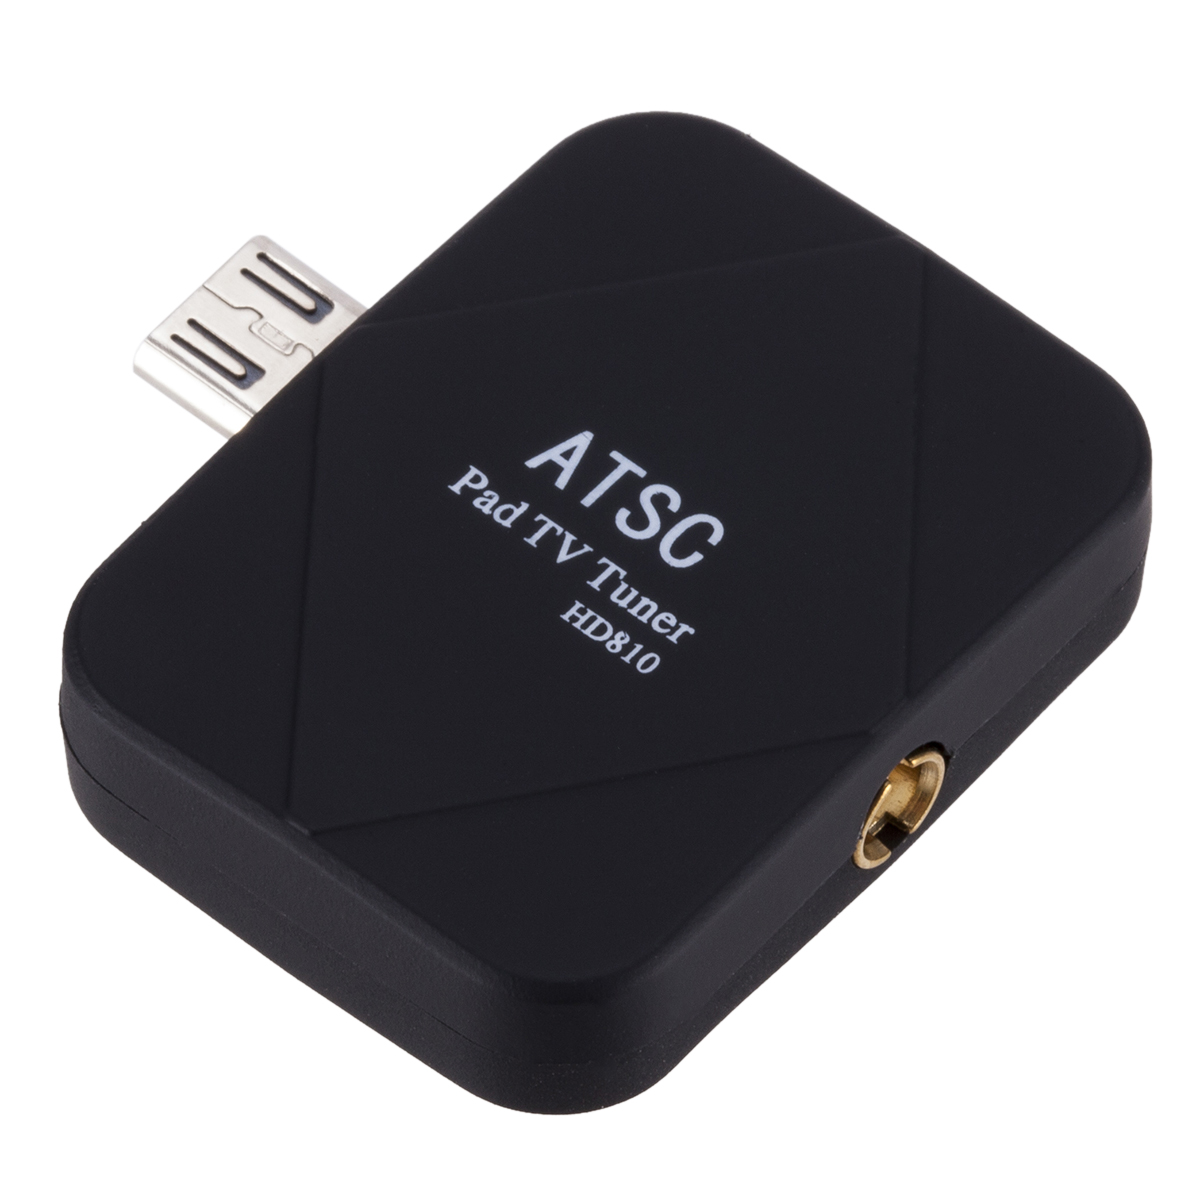 TV Tuner Stick ATSC Live Digital ATSC TV Receiver TV On Android Phone Pad For USA Korea Mexico Canada HDTV Satellite Receiver